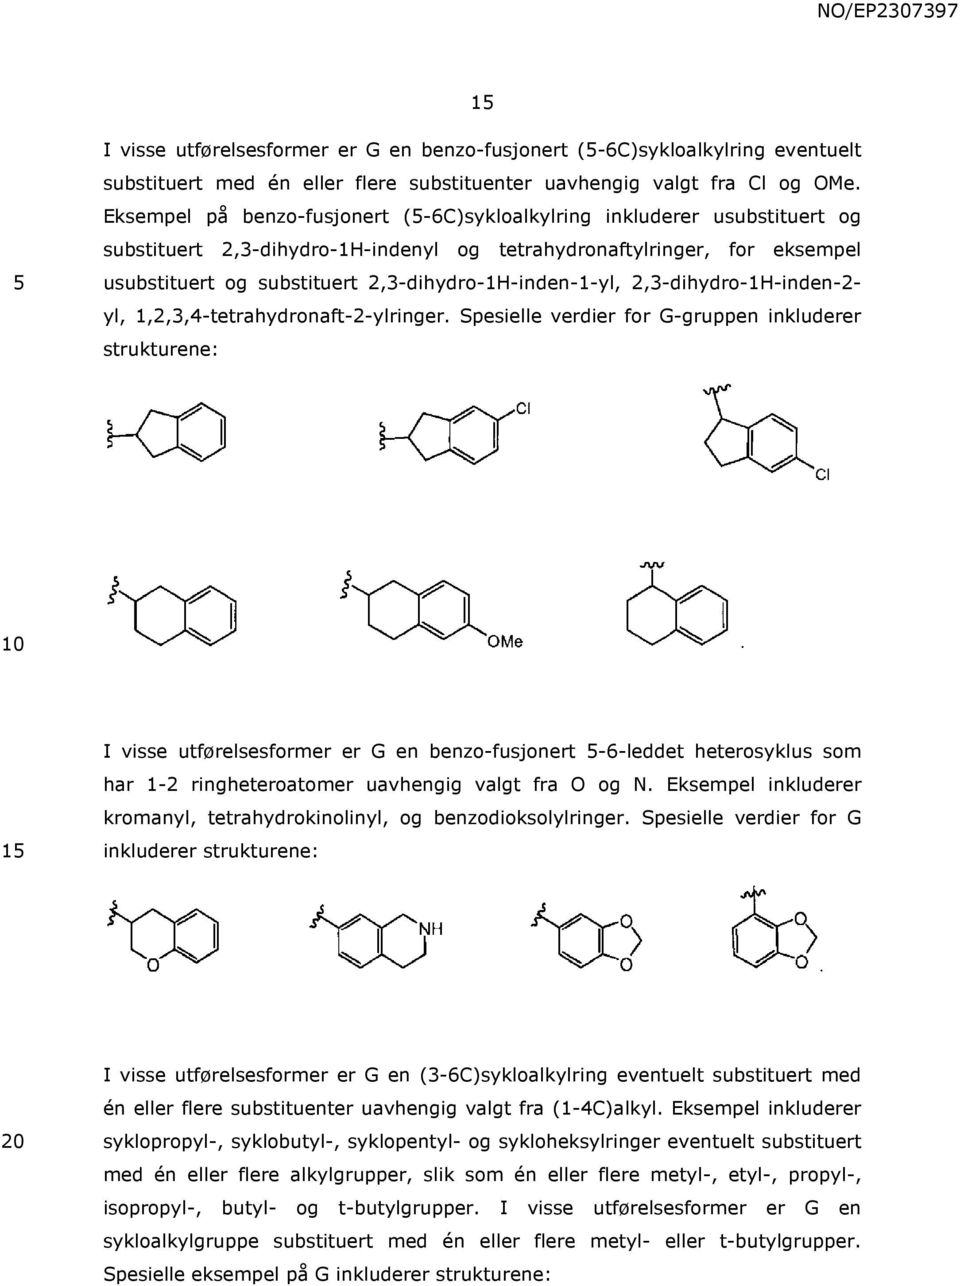 2,3-dihydro-1H-inden-1-yl, 2,3-dihydro-1H-inden-2- yl, 1,2,3,4-tetrahydronaft-2-ylringer.